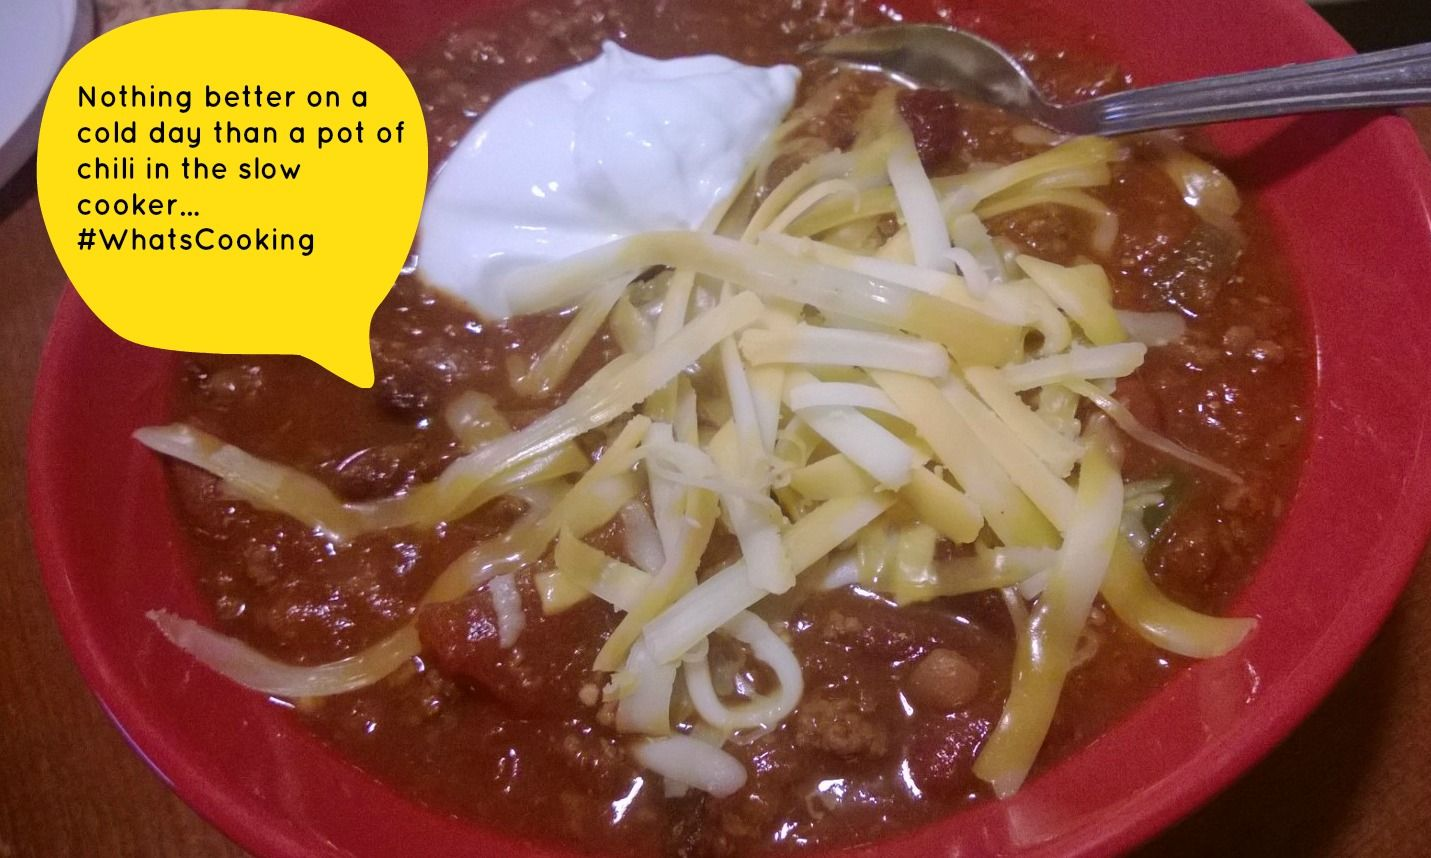 Delicious slow cooker chili recipe #whatscooking